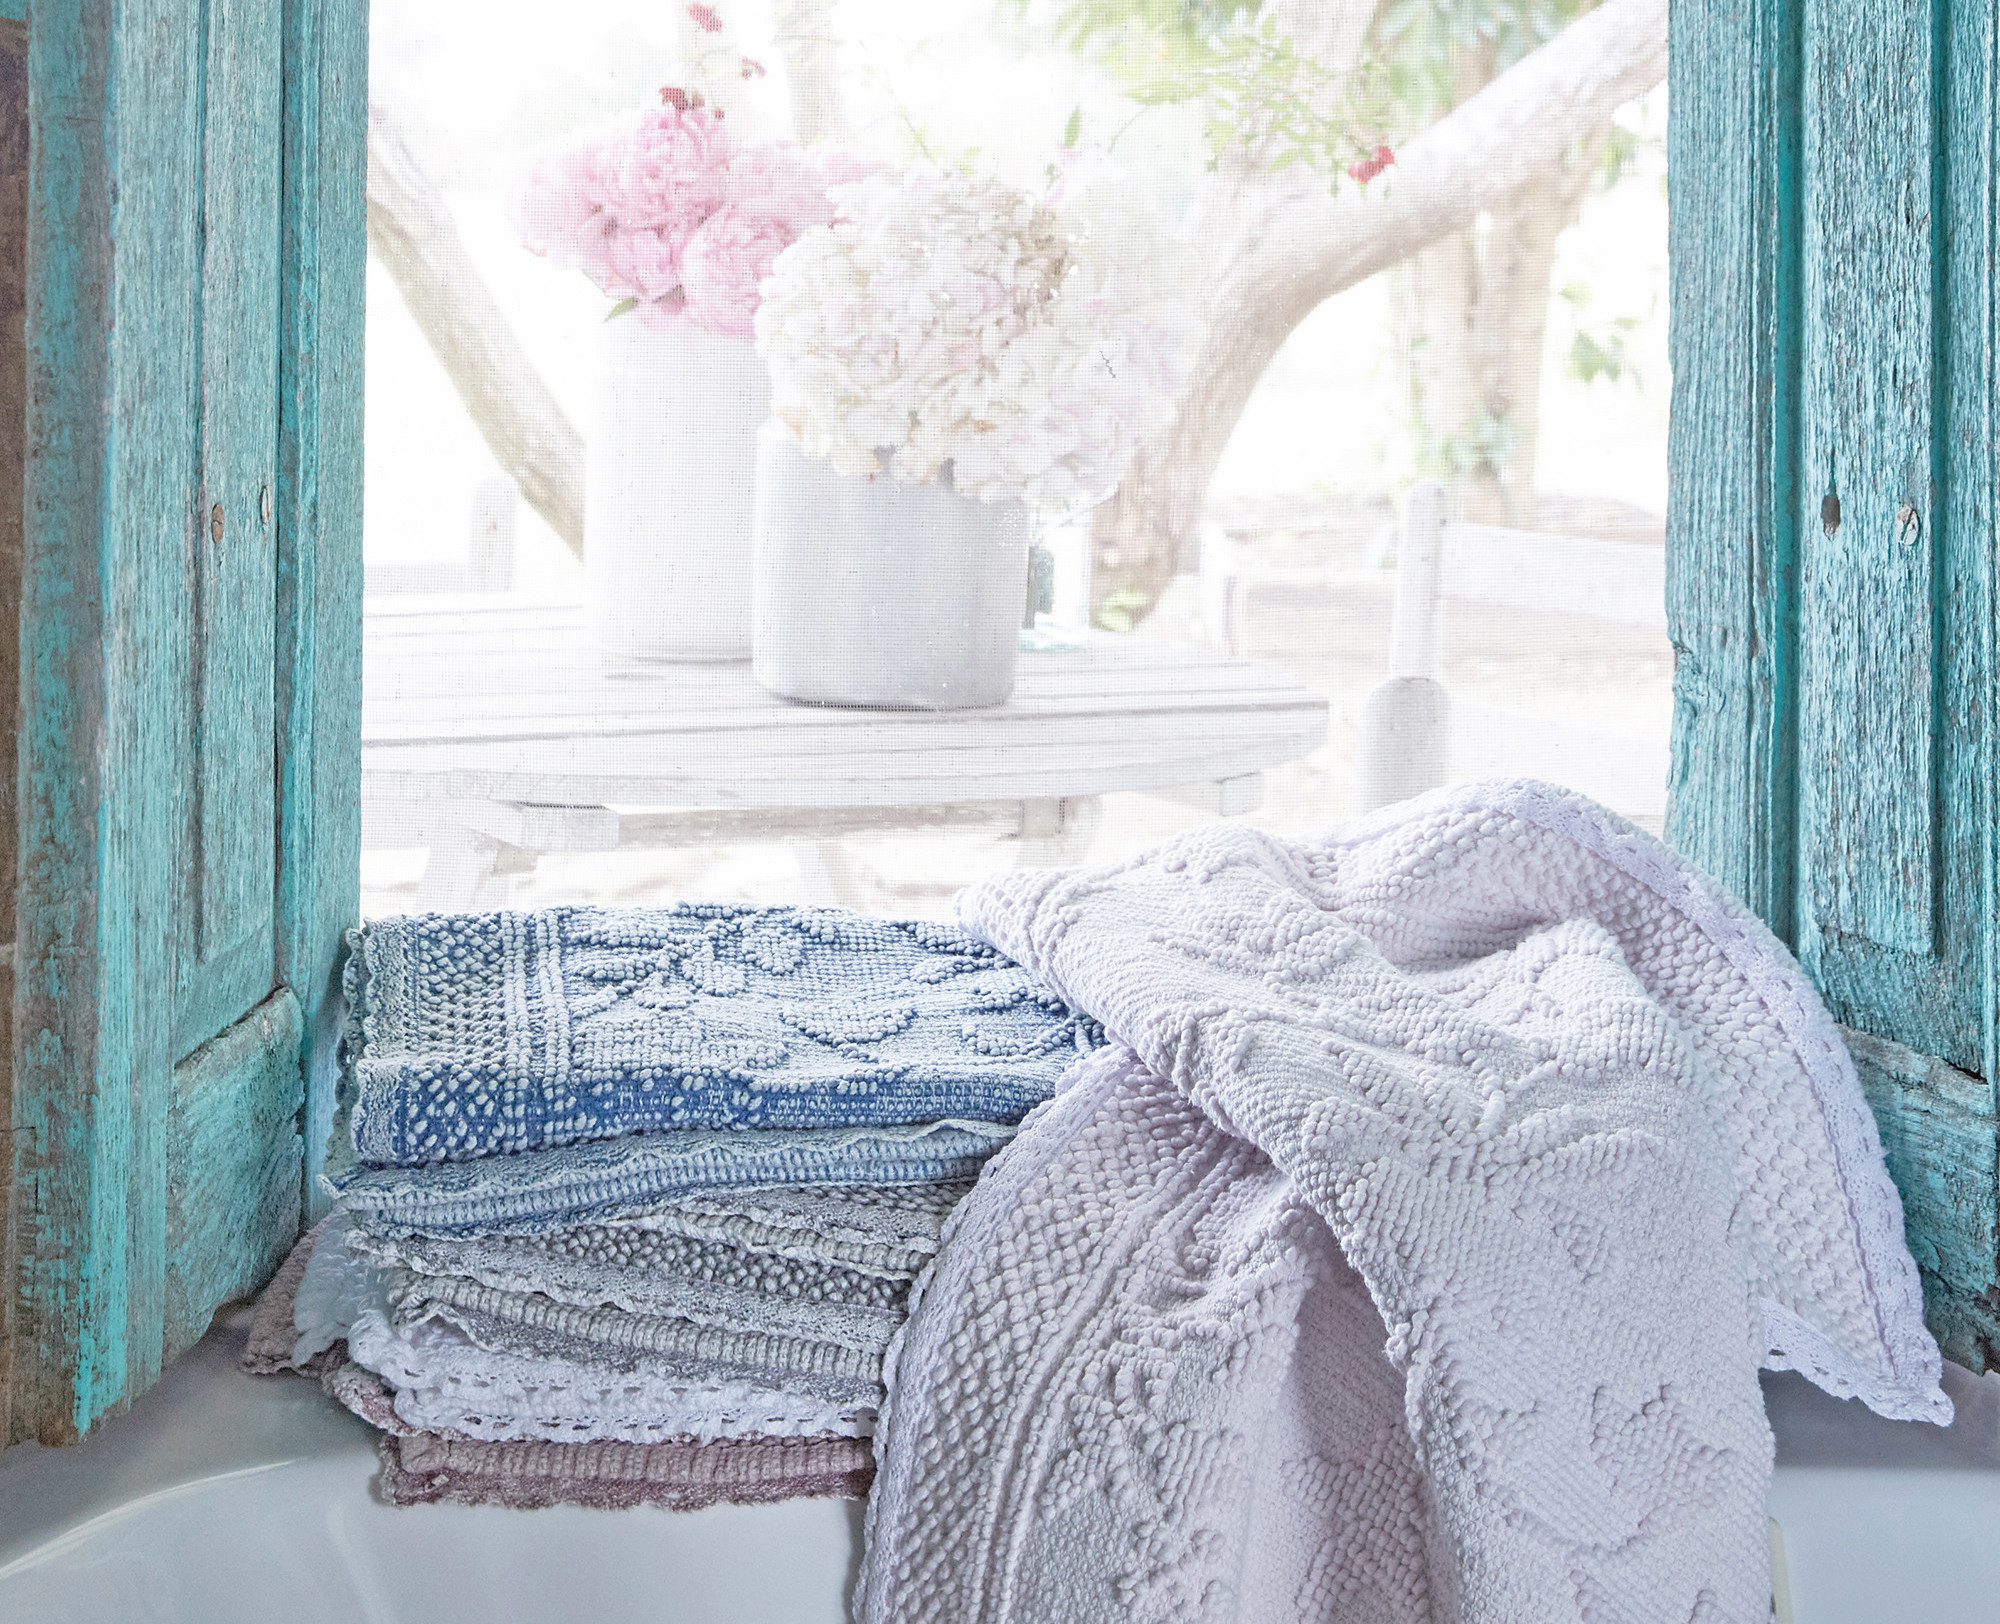 Shabby Chic Decor finds await you in this inspiring lineup of interior design inspiration. #shabbychic #interiordesignideas #decoratingideas #rachelashwell #turquoise #pastels